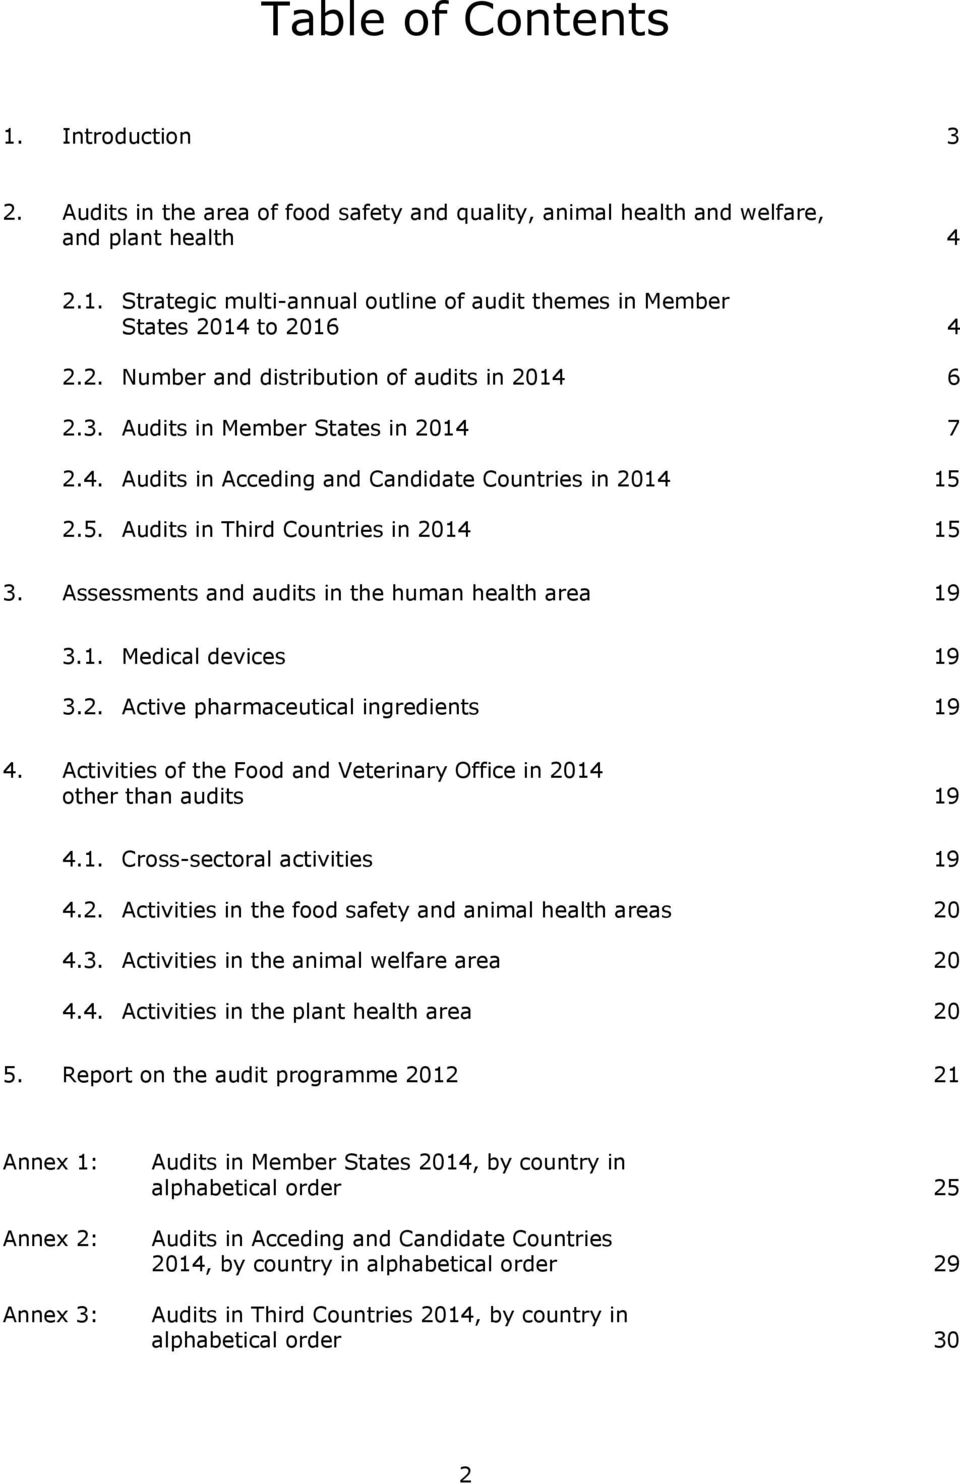 Assessments and audits in the human health area 19 3.1. Medical devices 19 3.2. Active pharmaceutical ingredients 19 4. Activities of the Food and Veterinary Office in 2014 other than audits 19 4.1. Cross-sectoral activities 19 4.